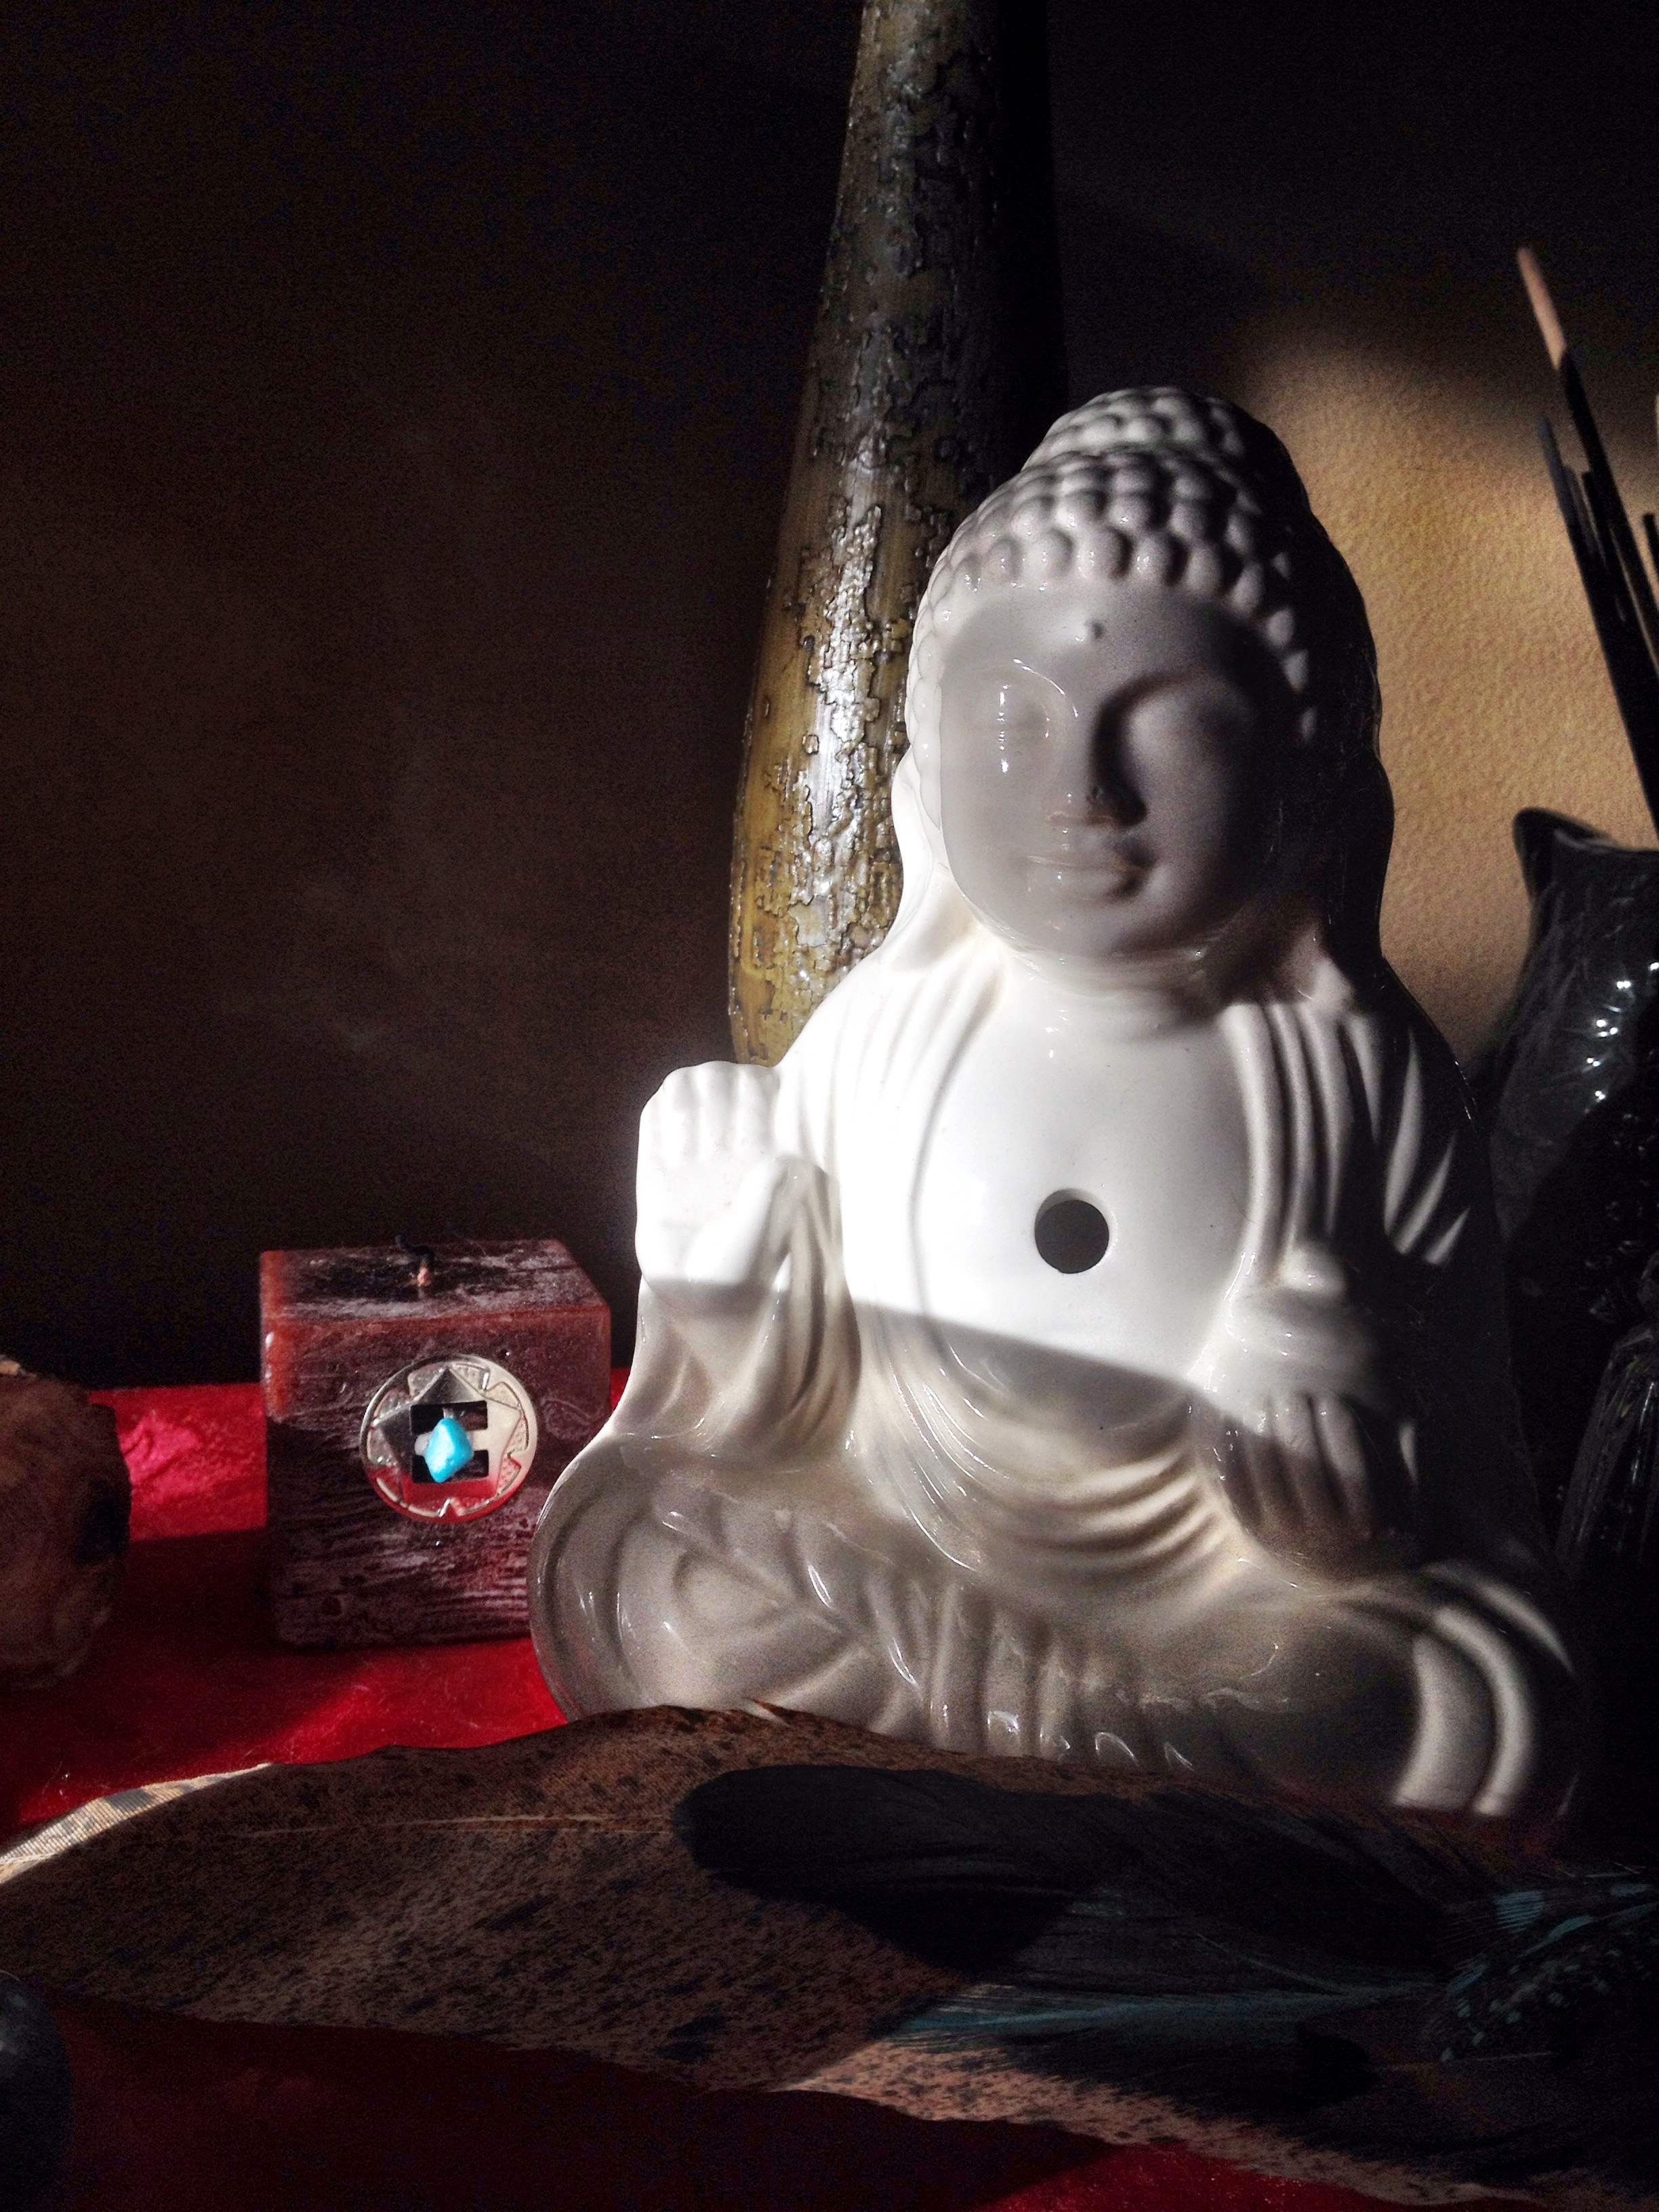 The Buddha on my altar is a reminder of peace, compassion, and wisdom.